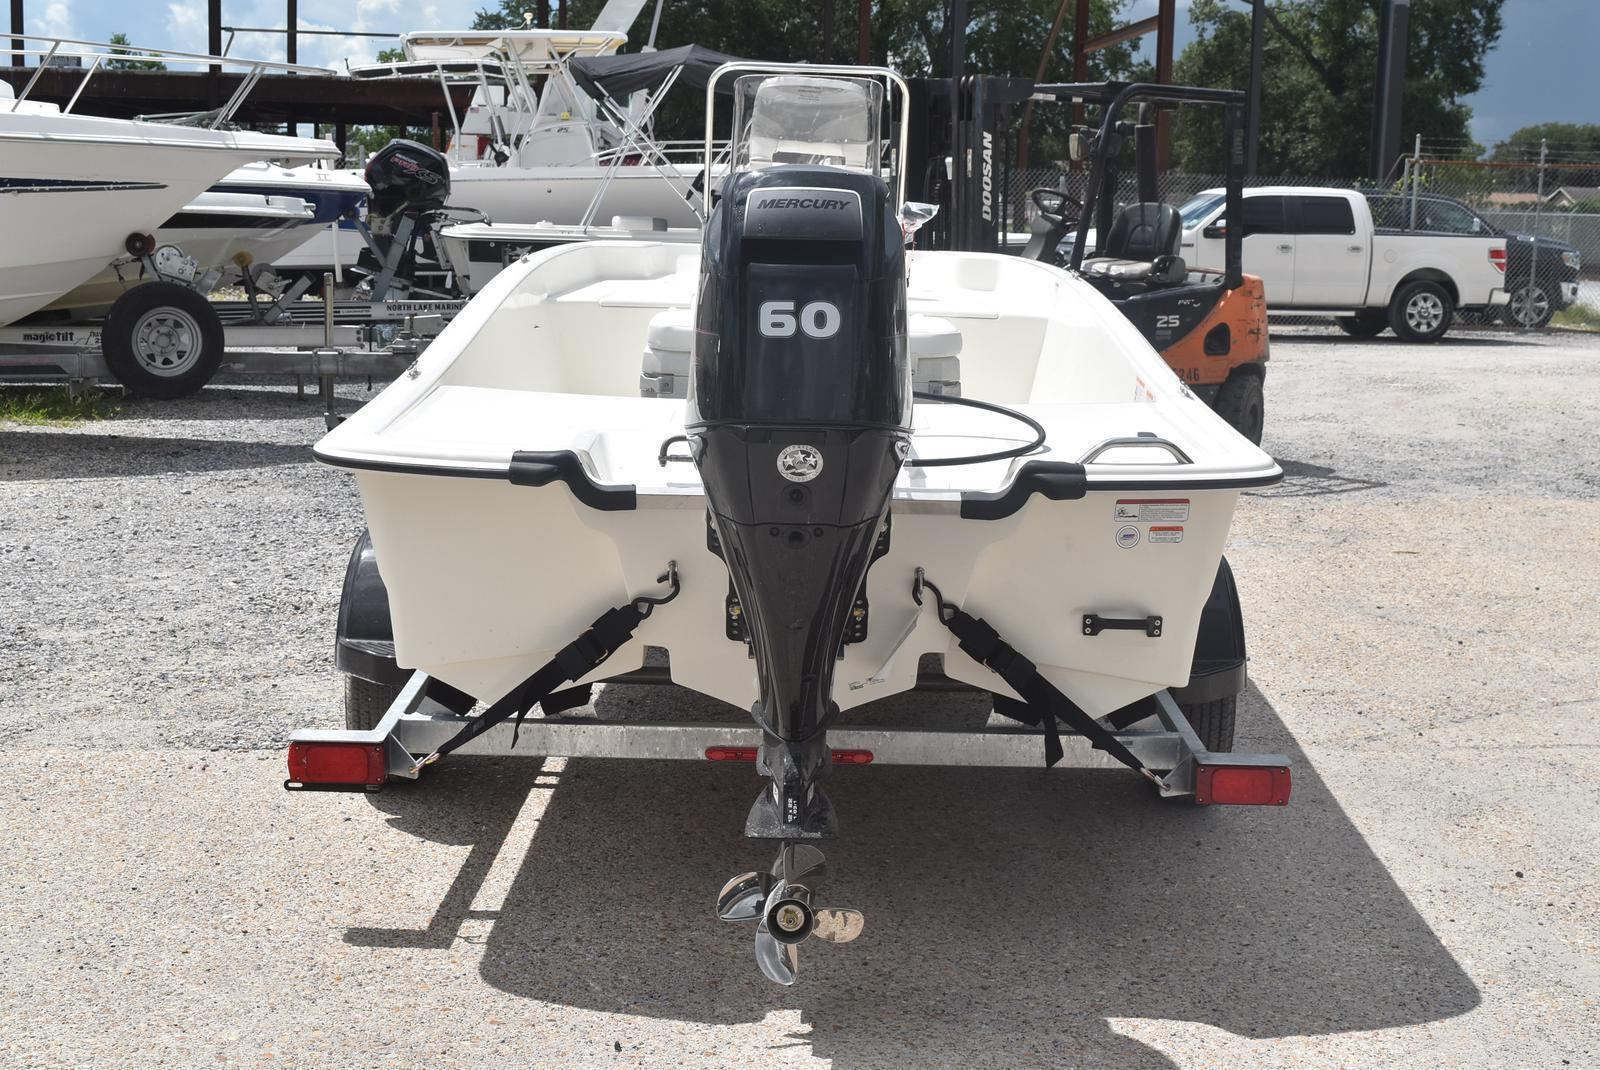 2020 Mako boat for sale, model of the boat is Pro Skiff 17, 75 ELPT & Image # 557 of 702